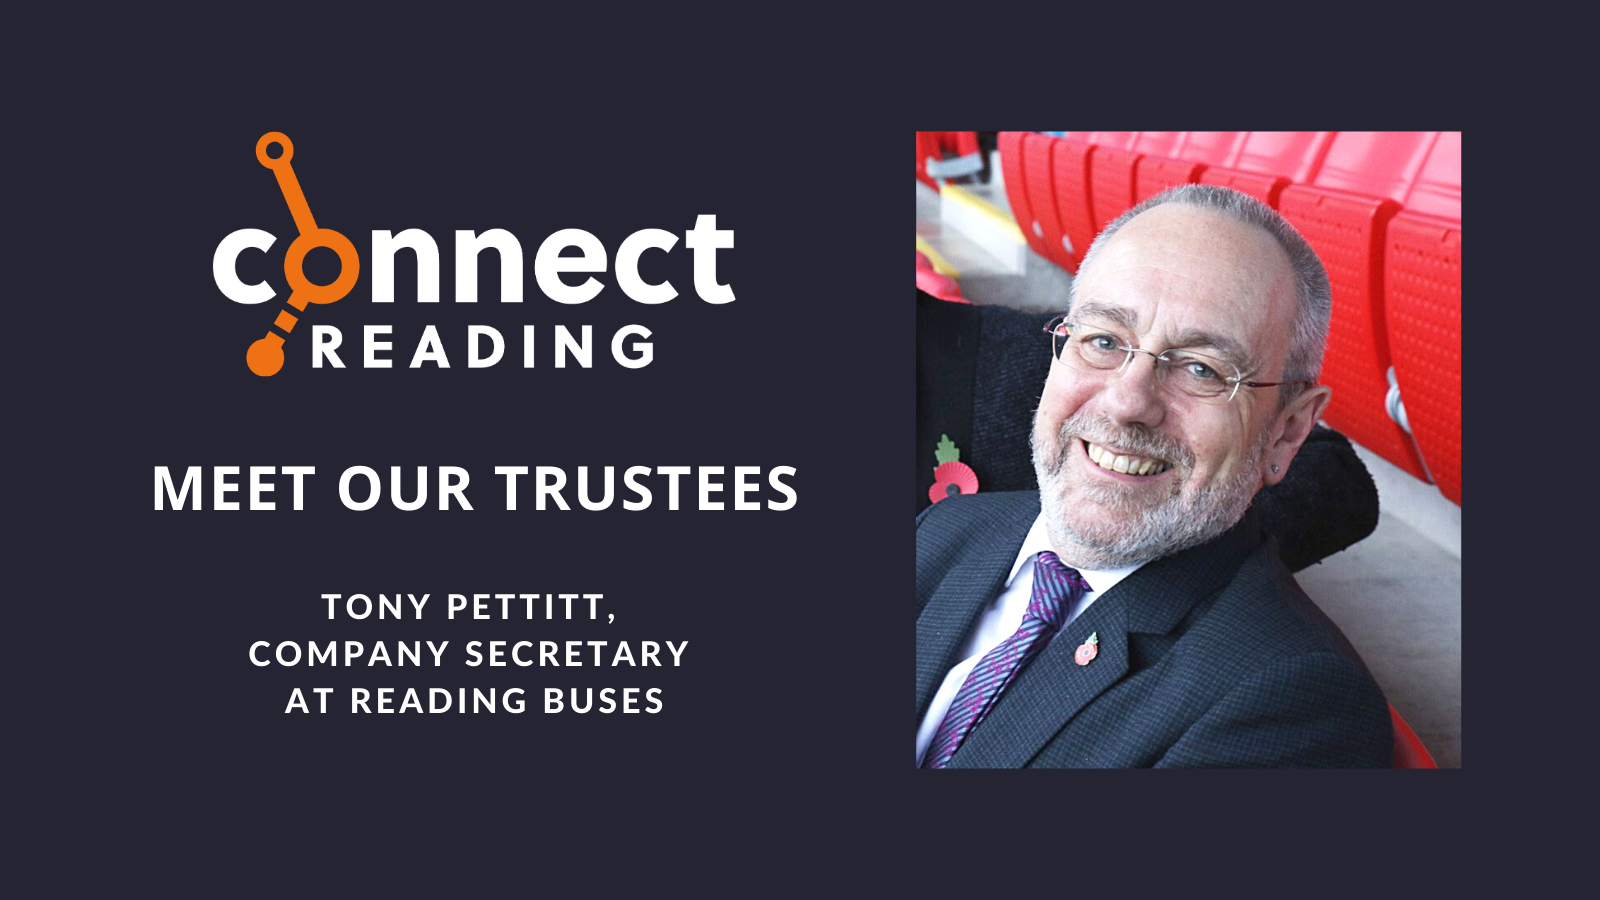 Meet our Trustees: Tony Pettitt